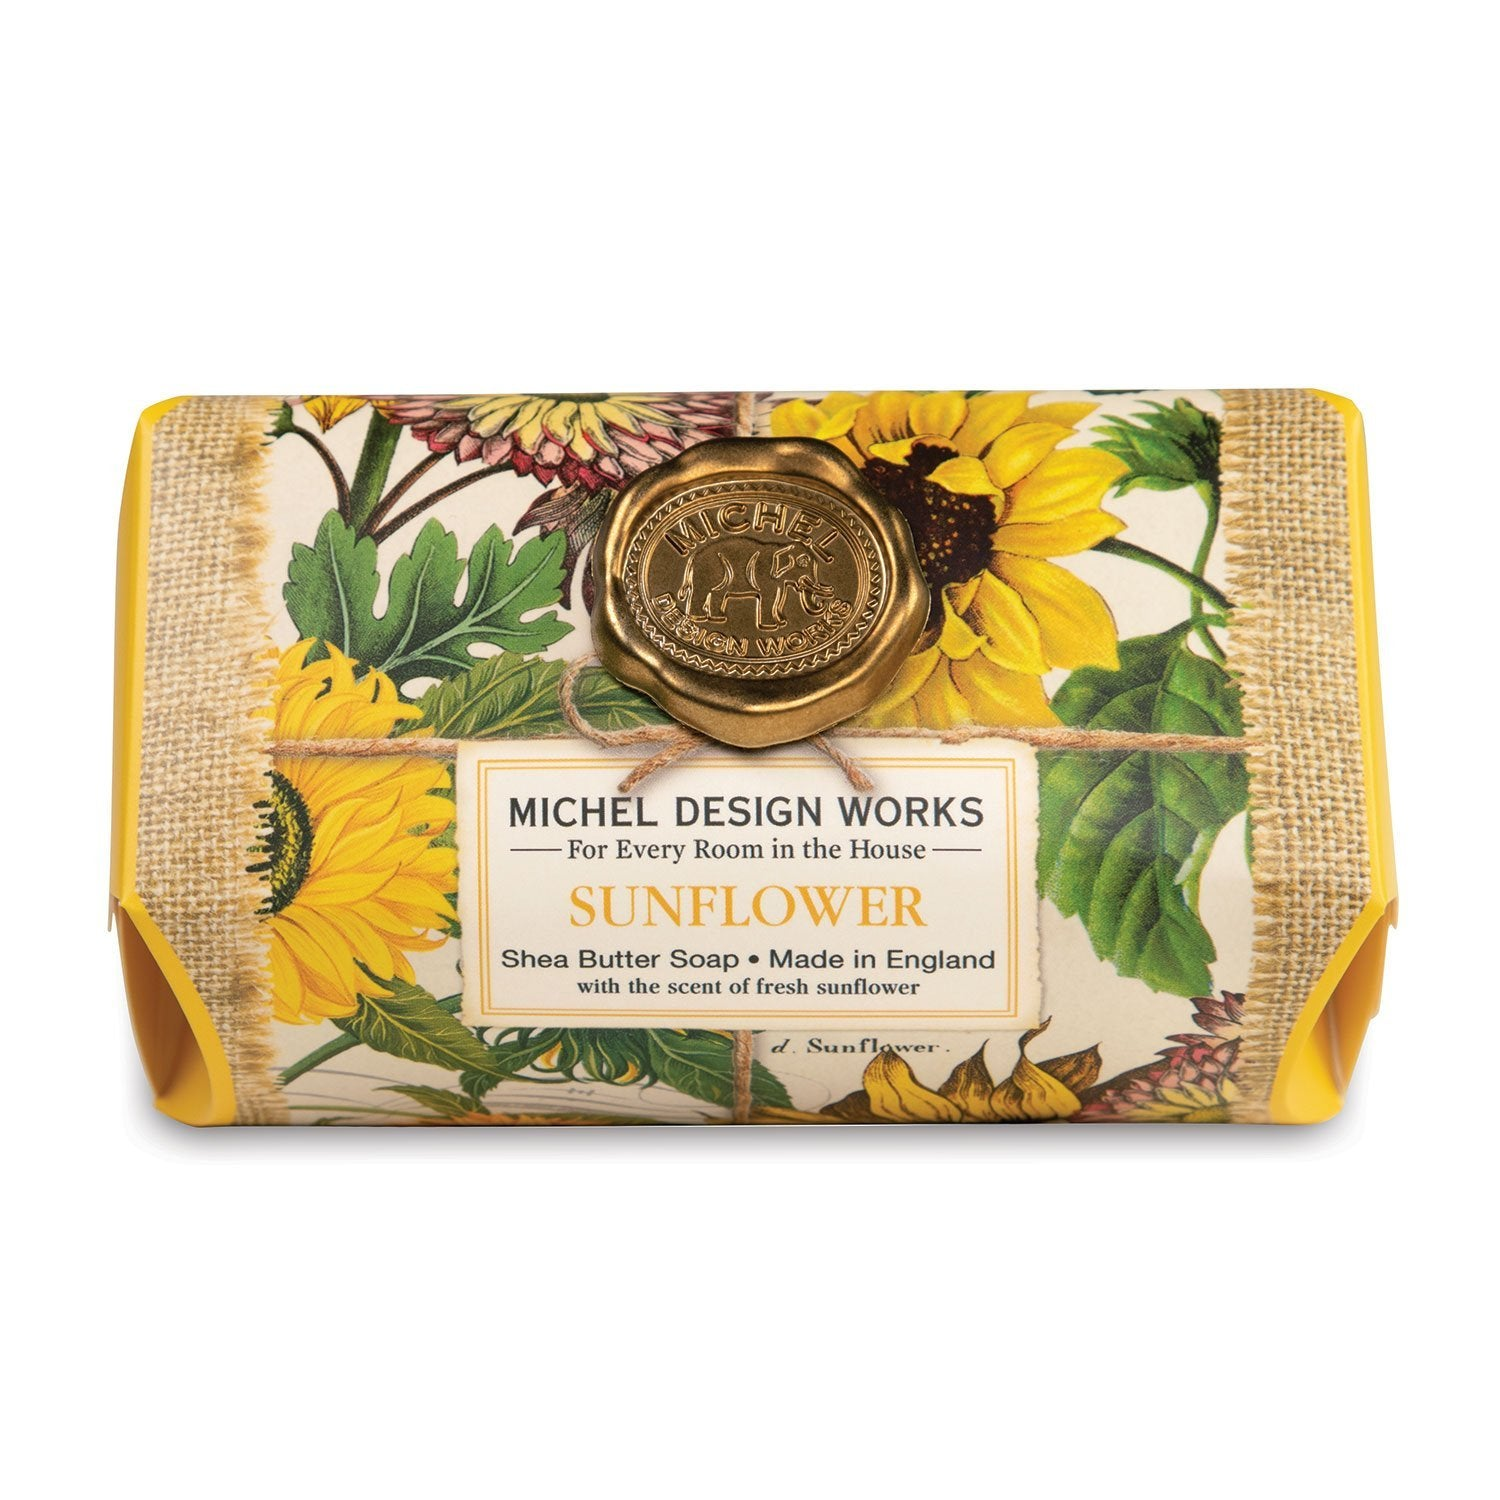 Michel Design Works Soap Bar Sunflower